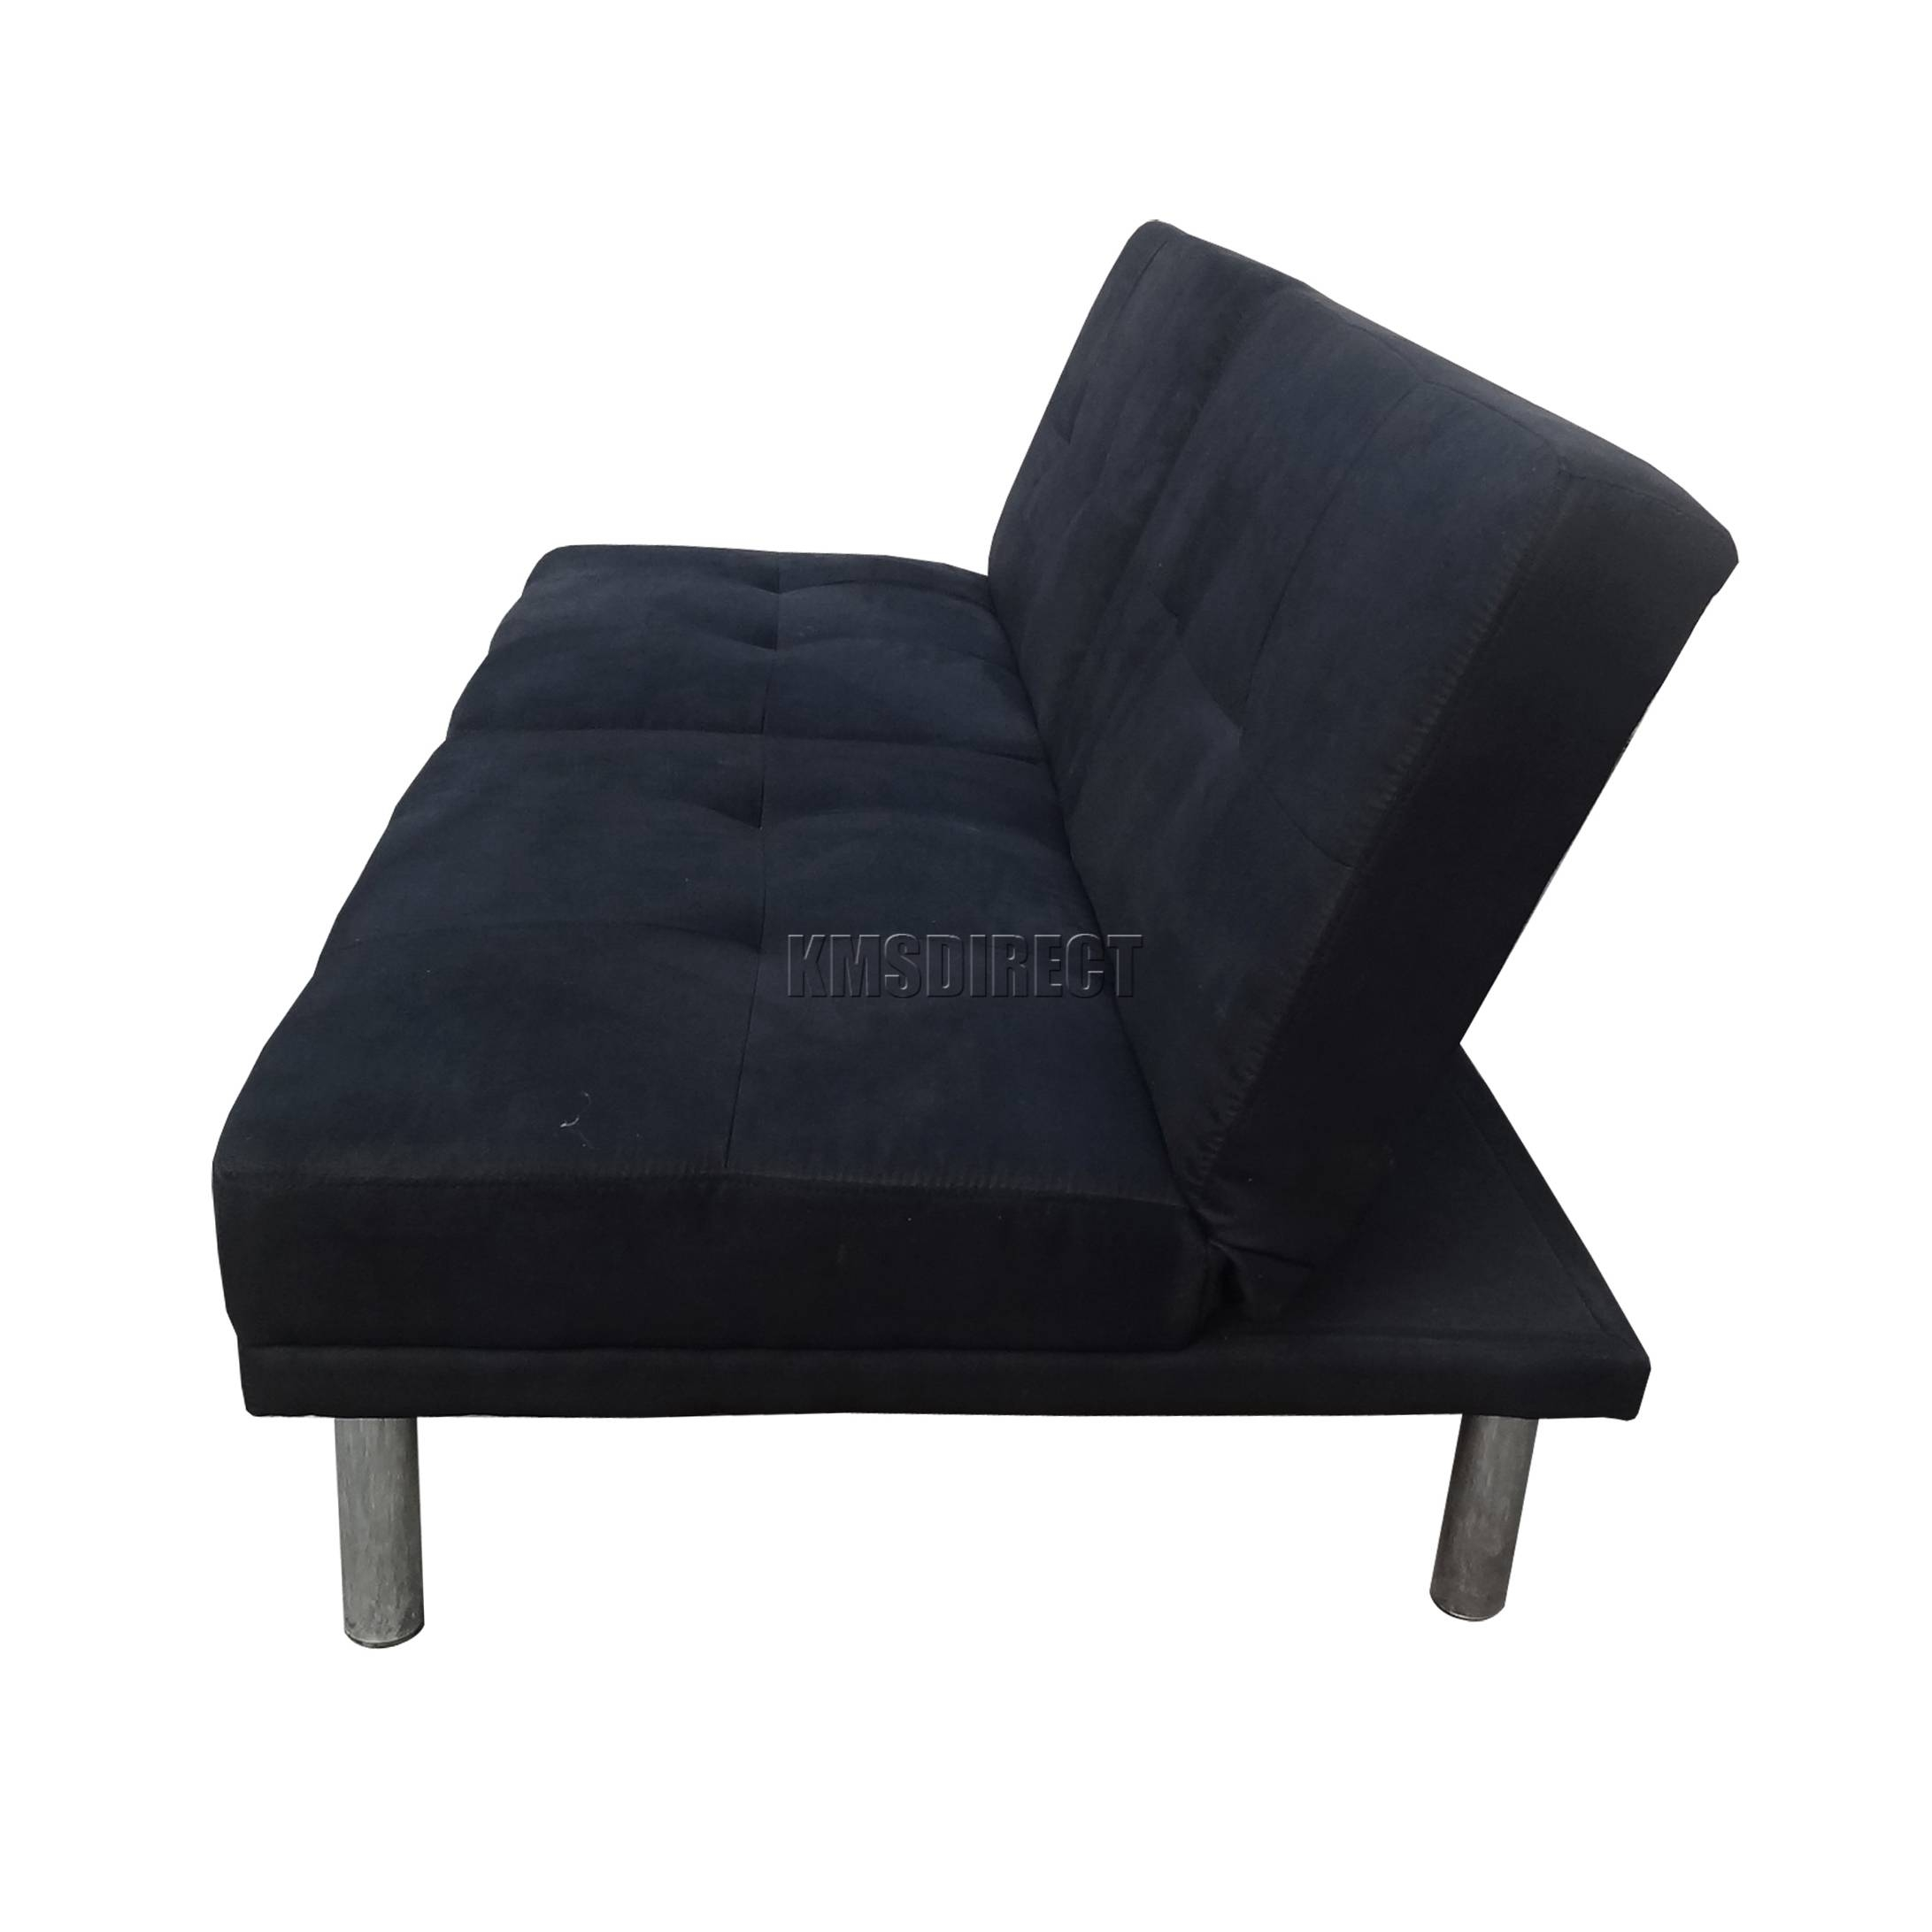 Foxhunter Fabric Faux Suede Sofa Bed Recliner 2 Seater Modern intended for Faux Suede Sofa Bed (Image 16 of 25)